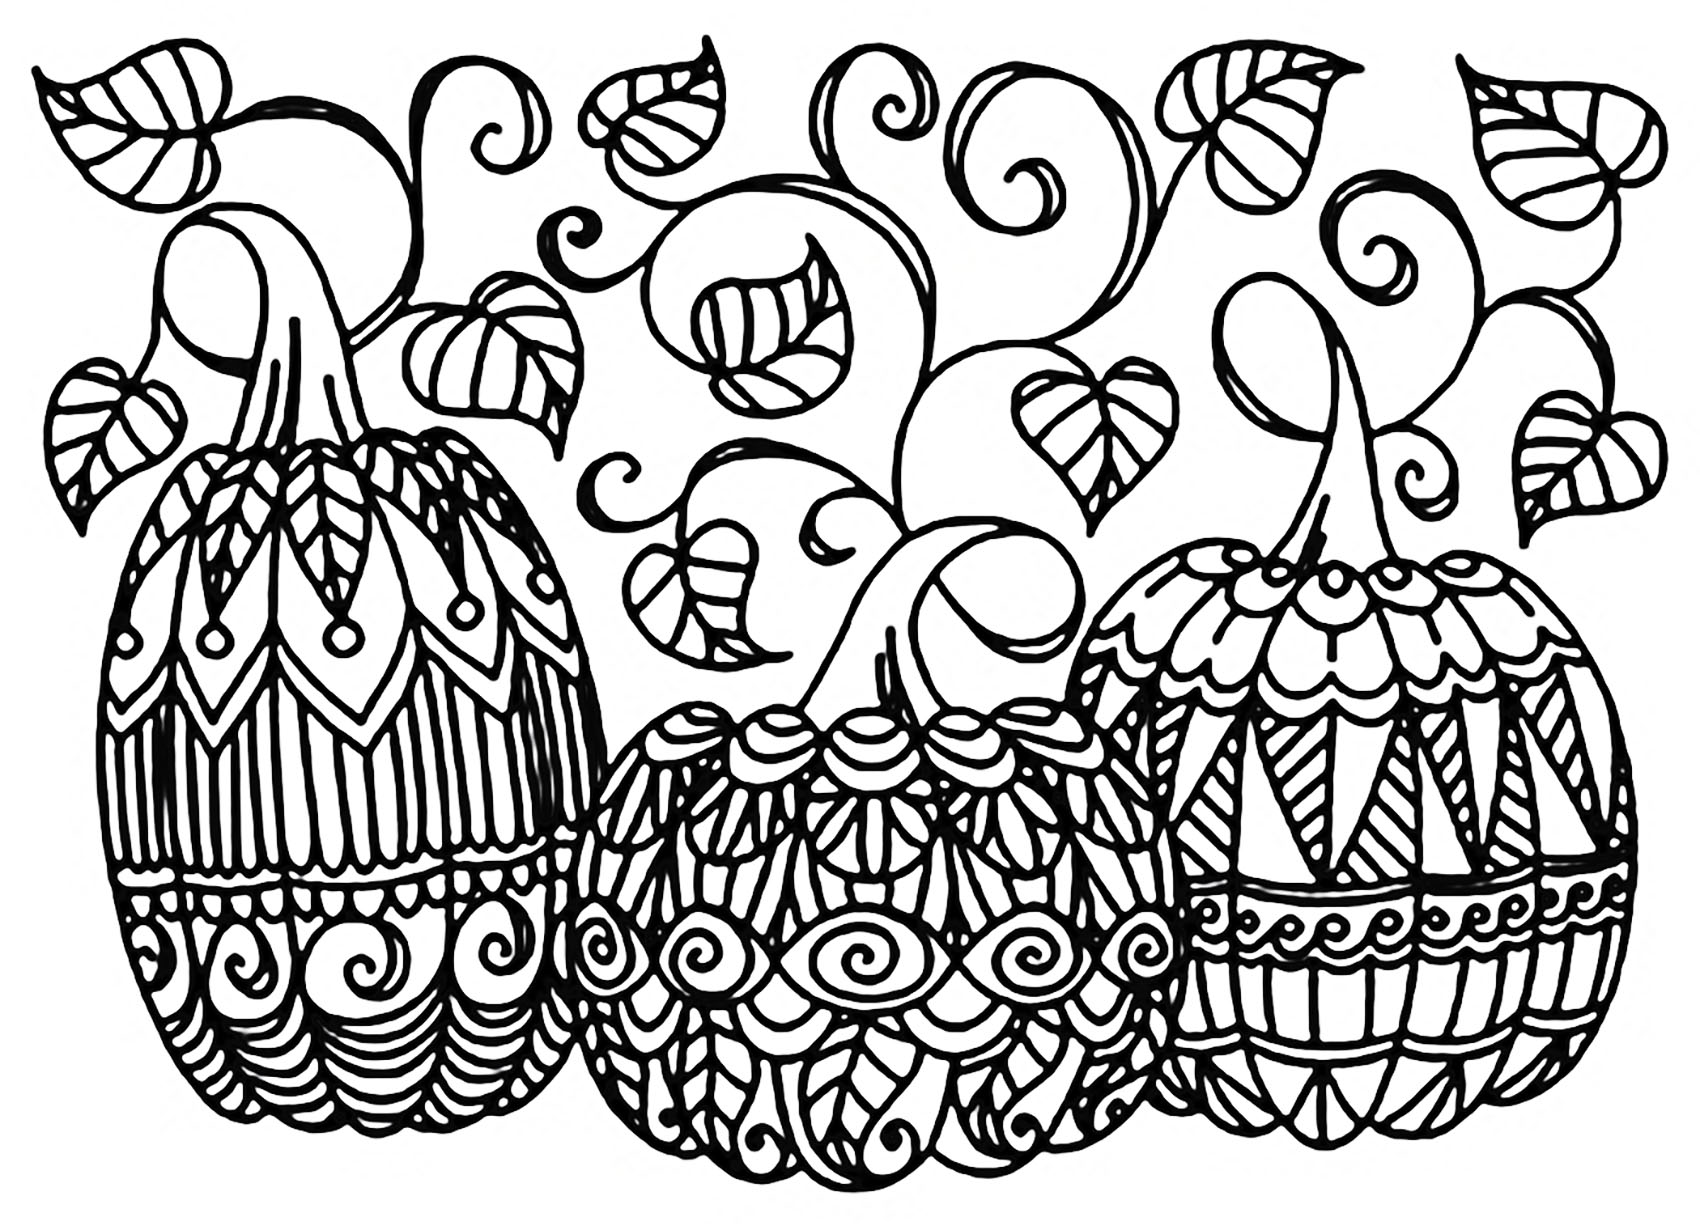 Halloween 3 citrouilles coloriage halloween coloriages - Coloriage halloween gratuit ...